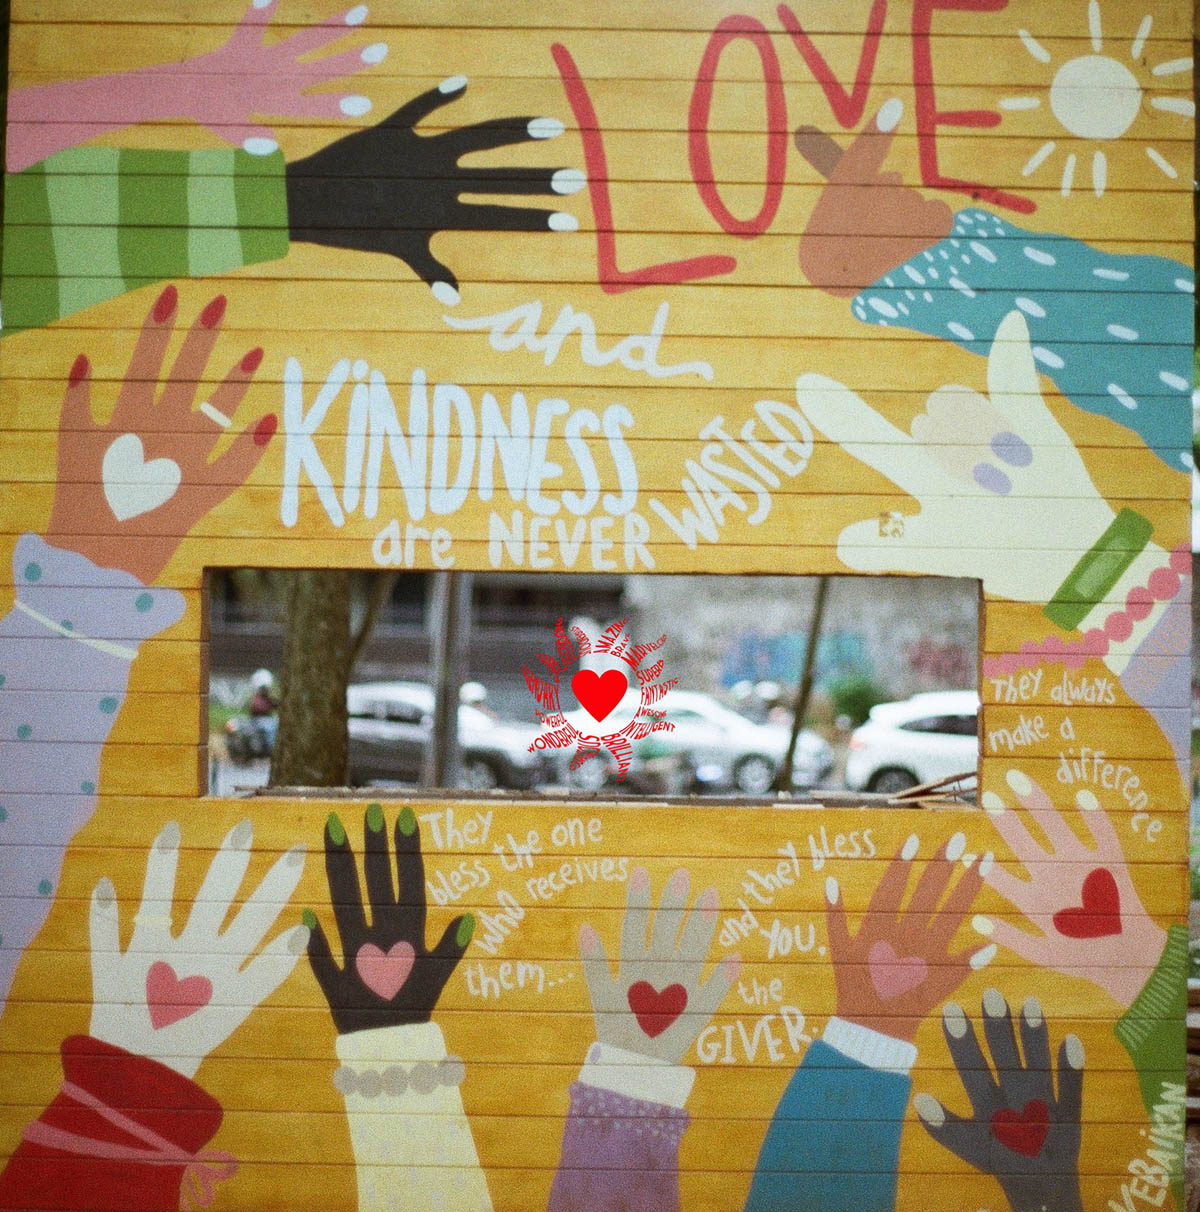 kindness never wasted - postcard project